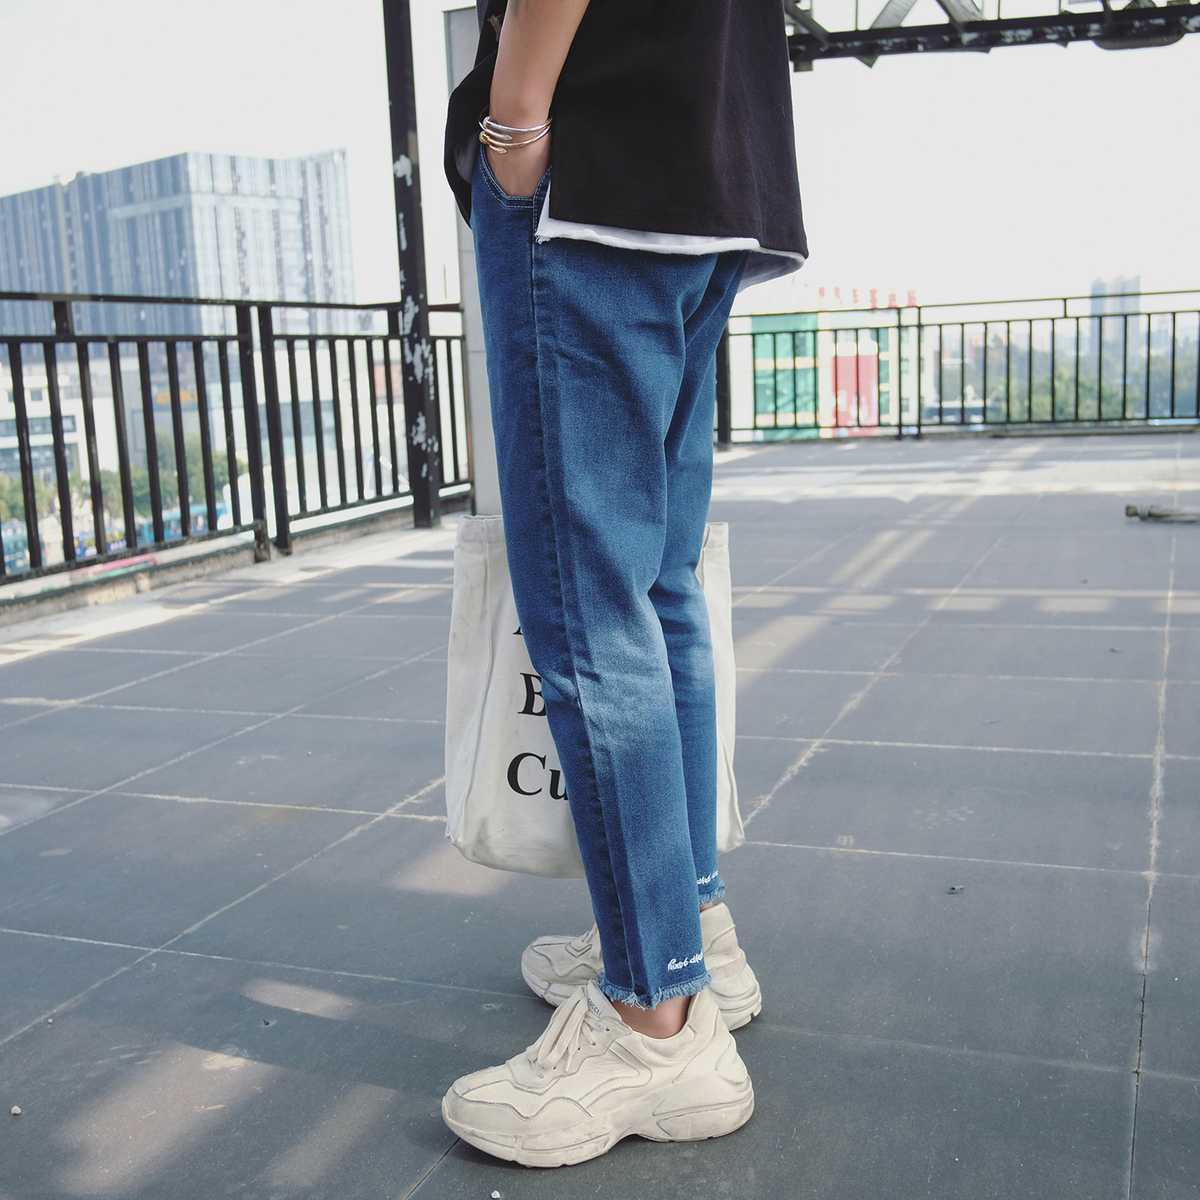 2018 Spring Newest Mens Fashion Classic Jeans Embroidery Skinny Stretch Fit Slim Pants Blue Casual Denim Trousers Size 28-34